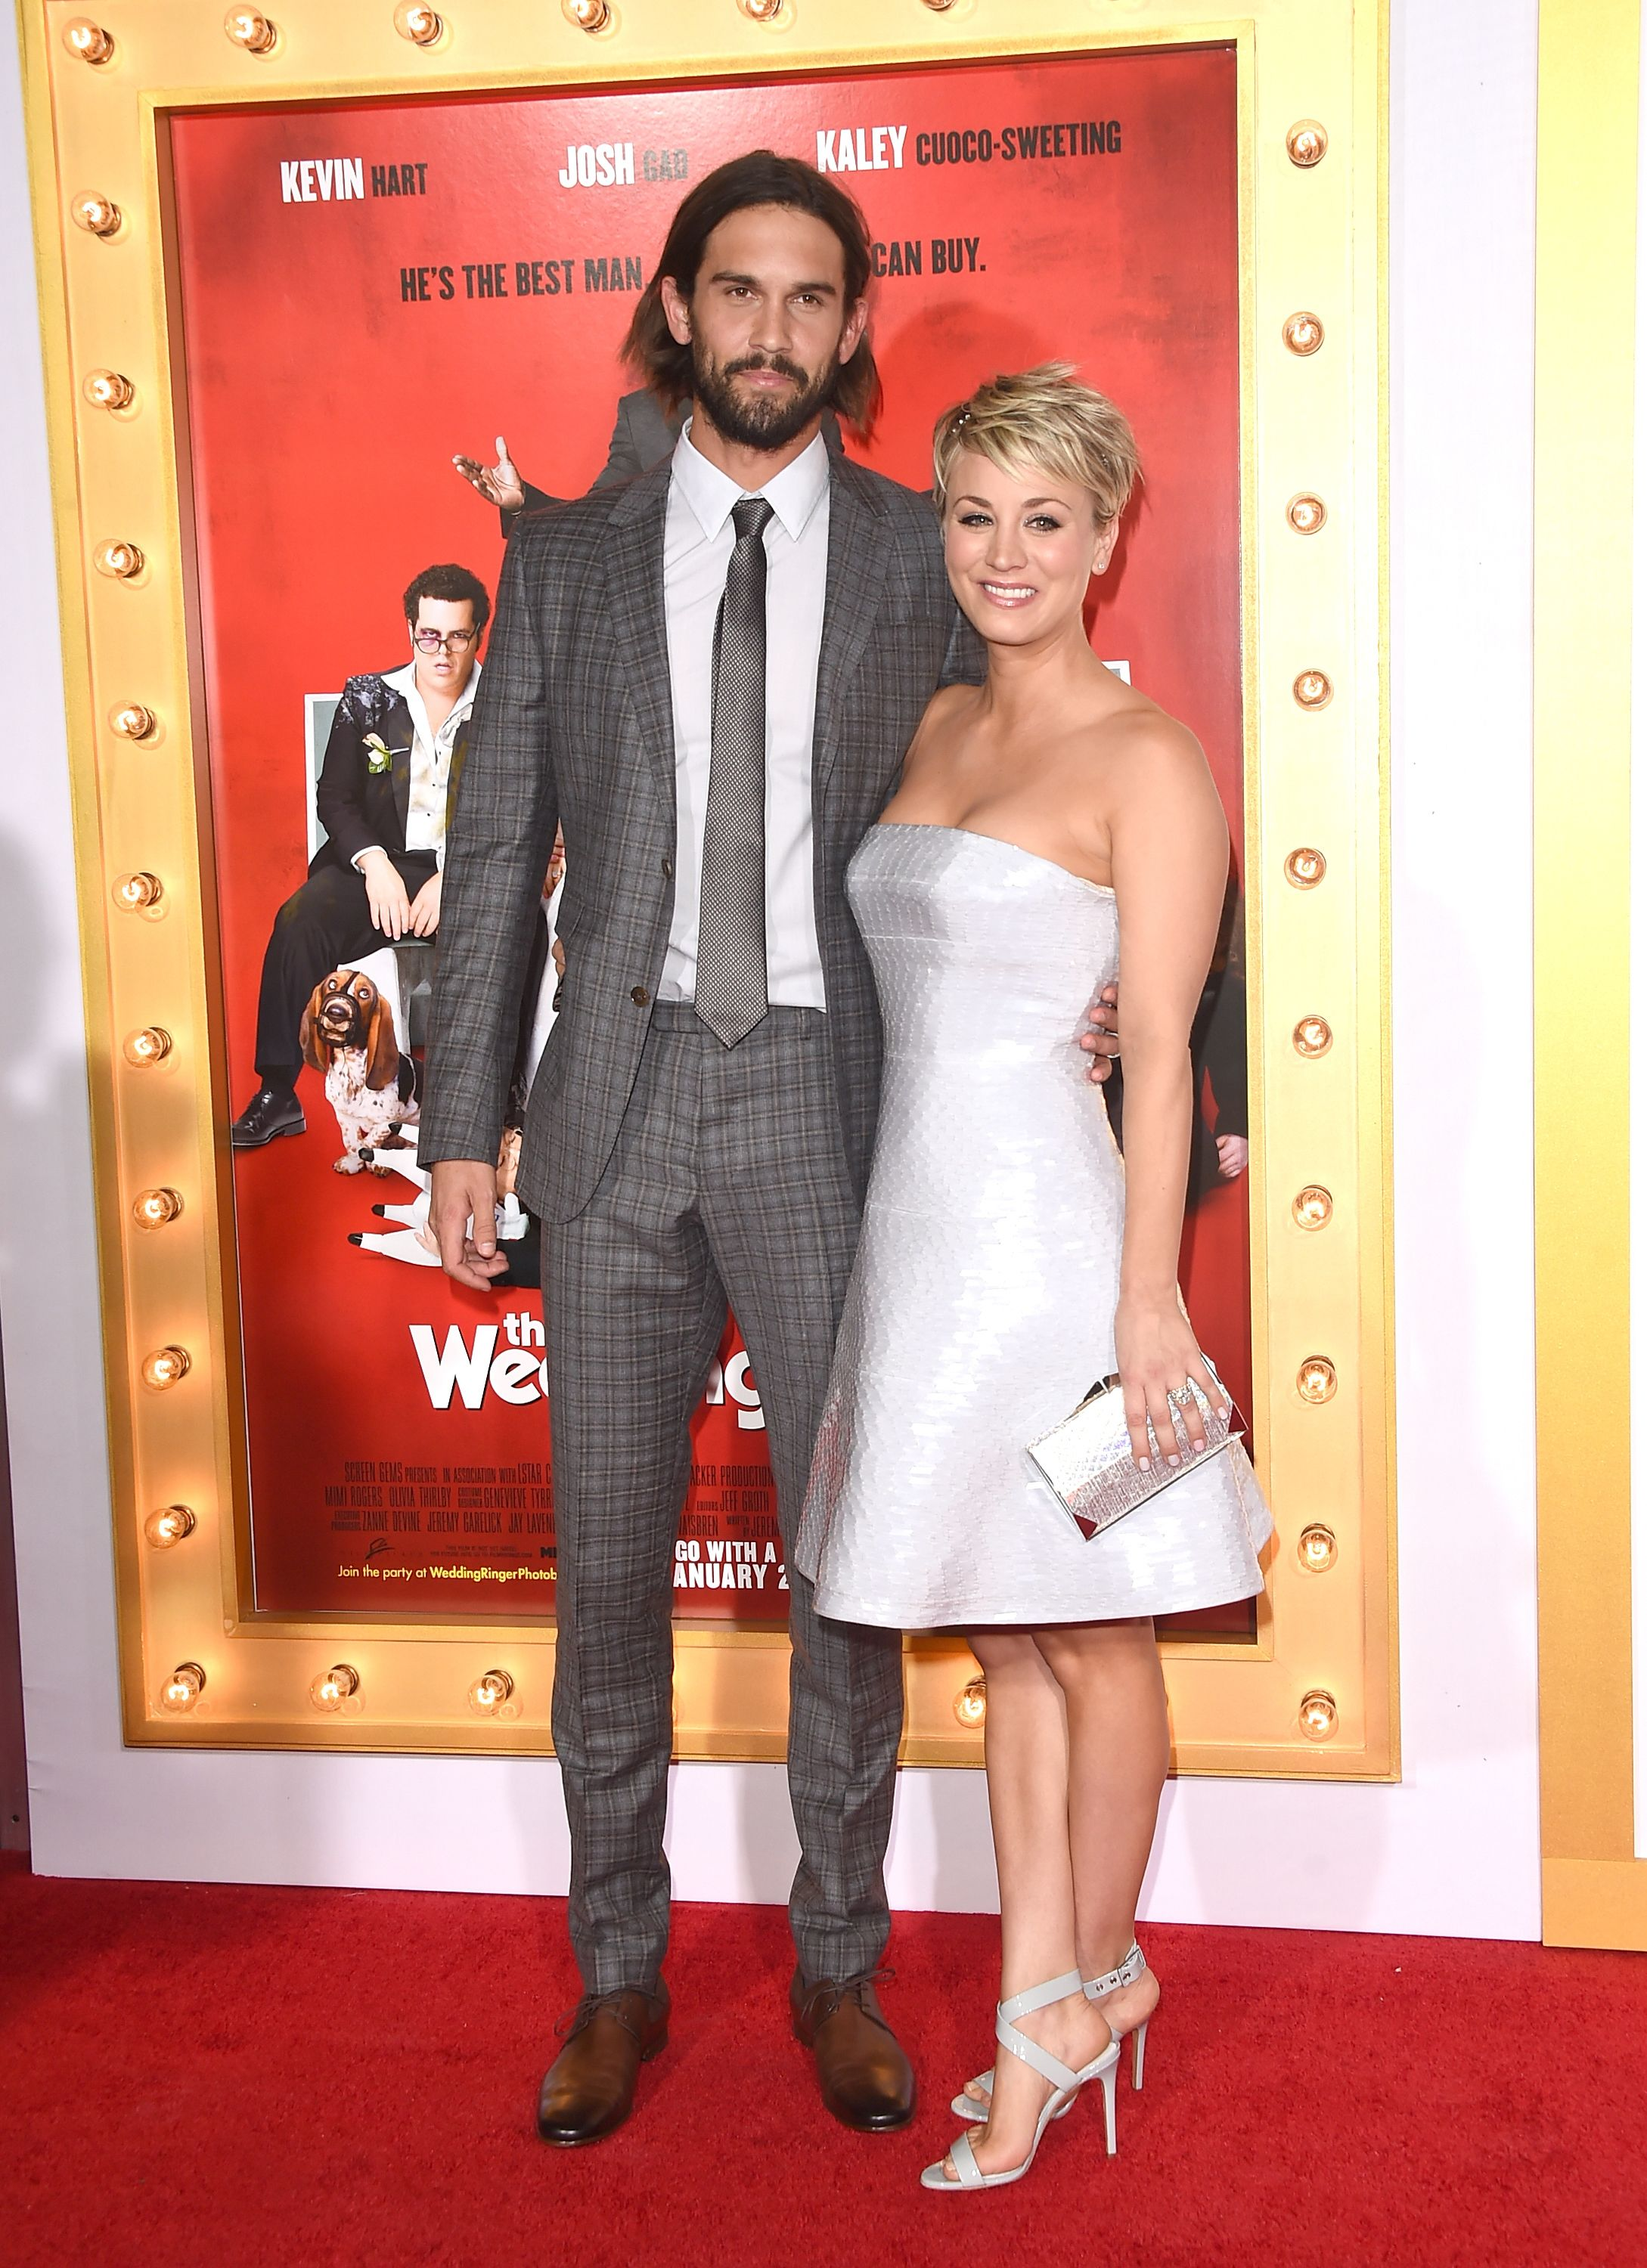 Wedding Ringer Cast.The Wedding Ringer Cast Interview Video Hair Kaley Cuoco